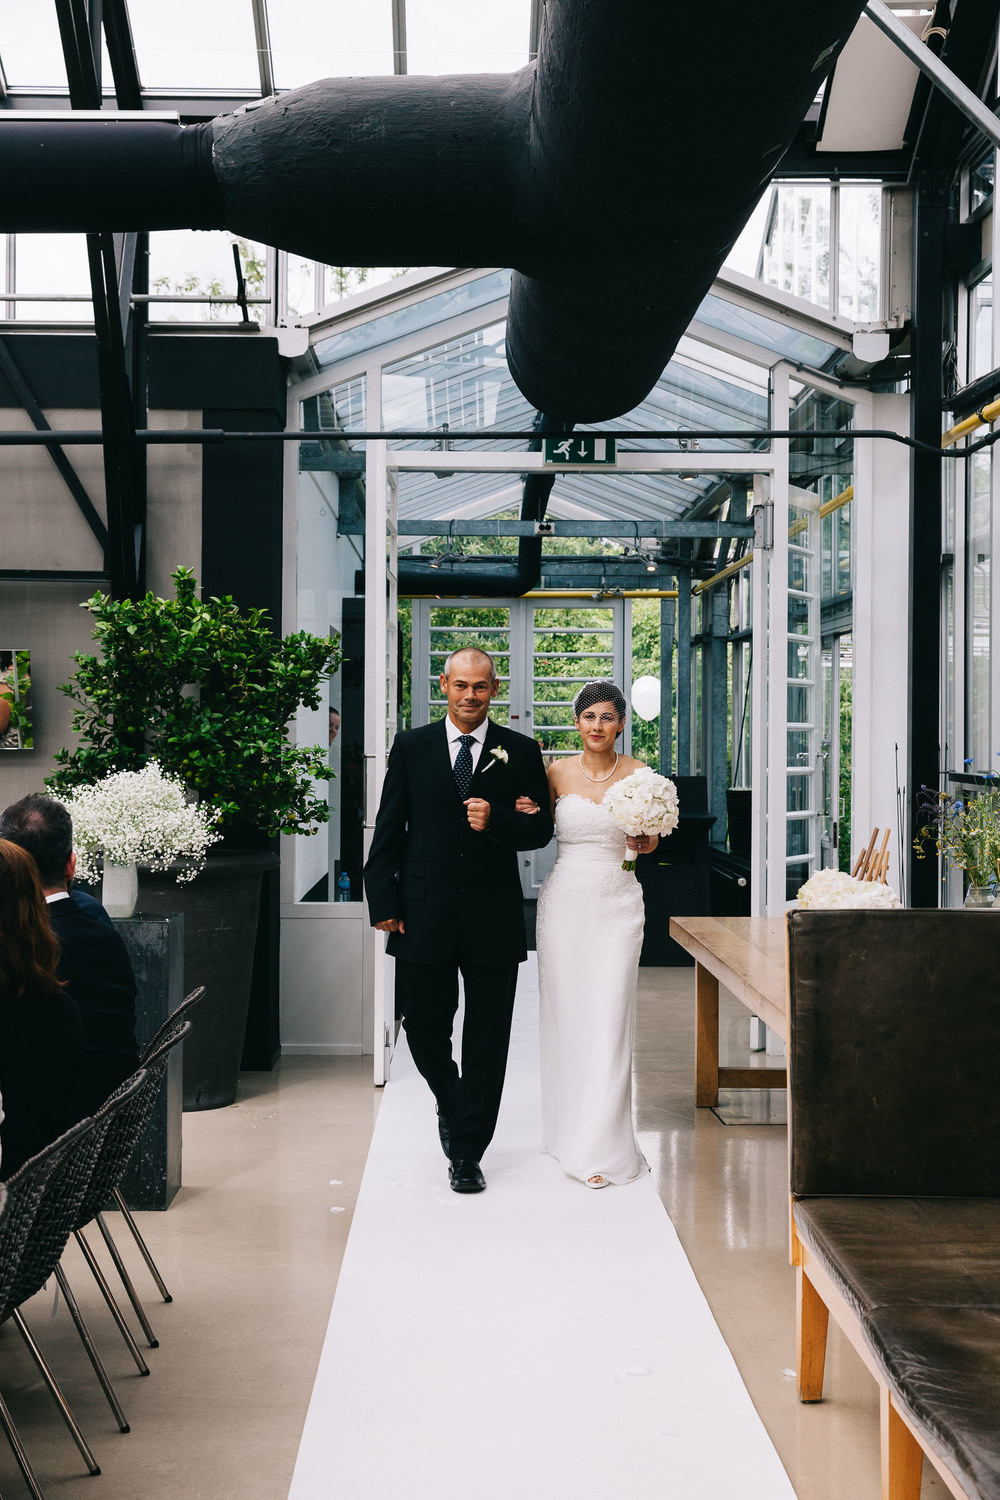 Urban-green-greenhouse-wedding-Ilina-and-james-restaurant-De-Kas-Amsterdam-by-On-a-hazy-morning-51.jpg